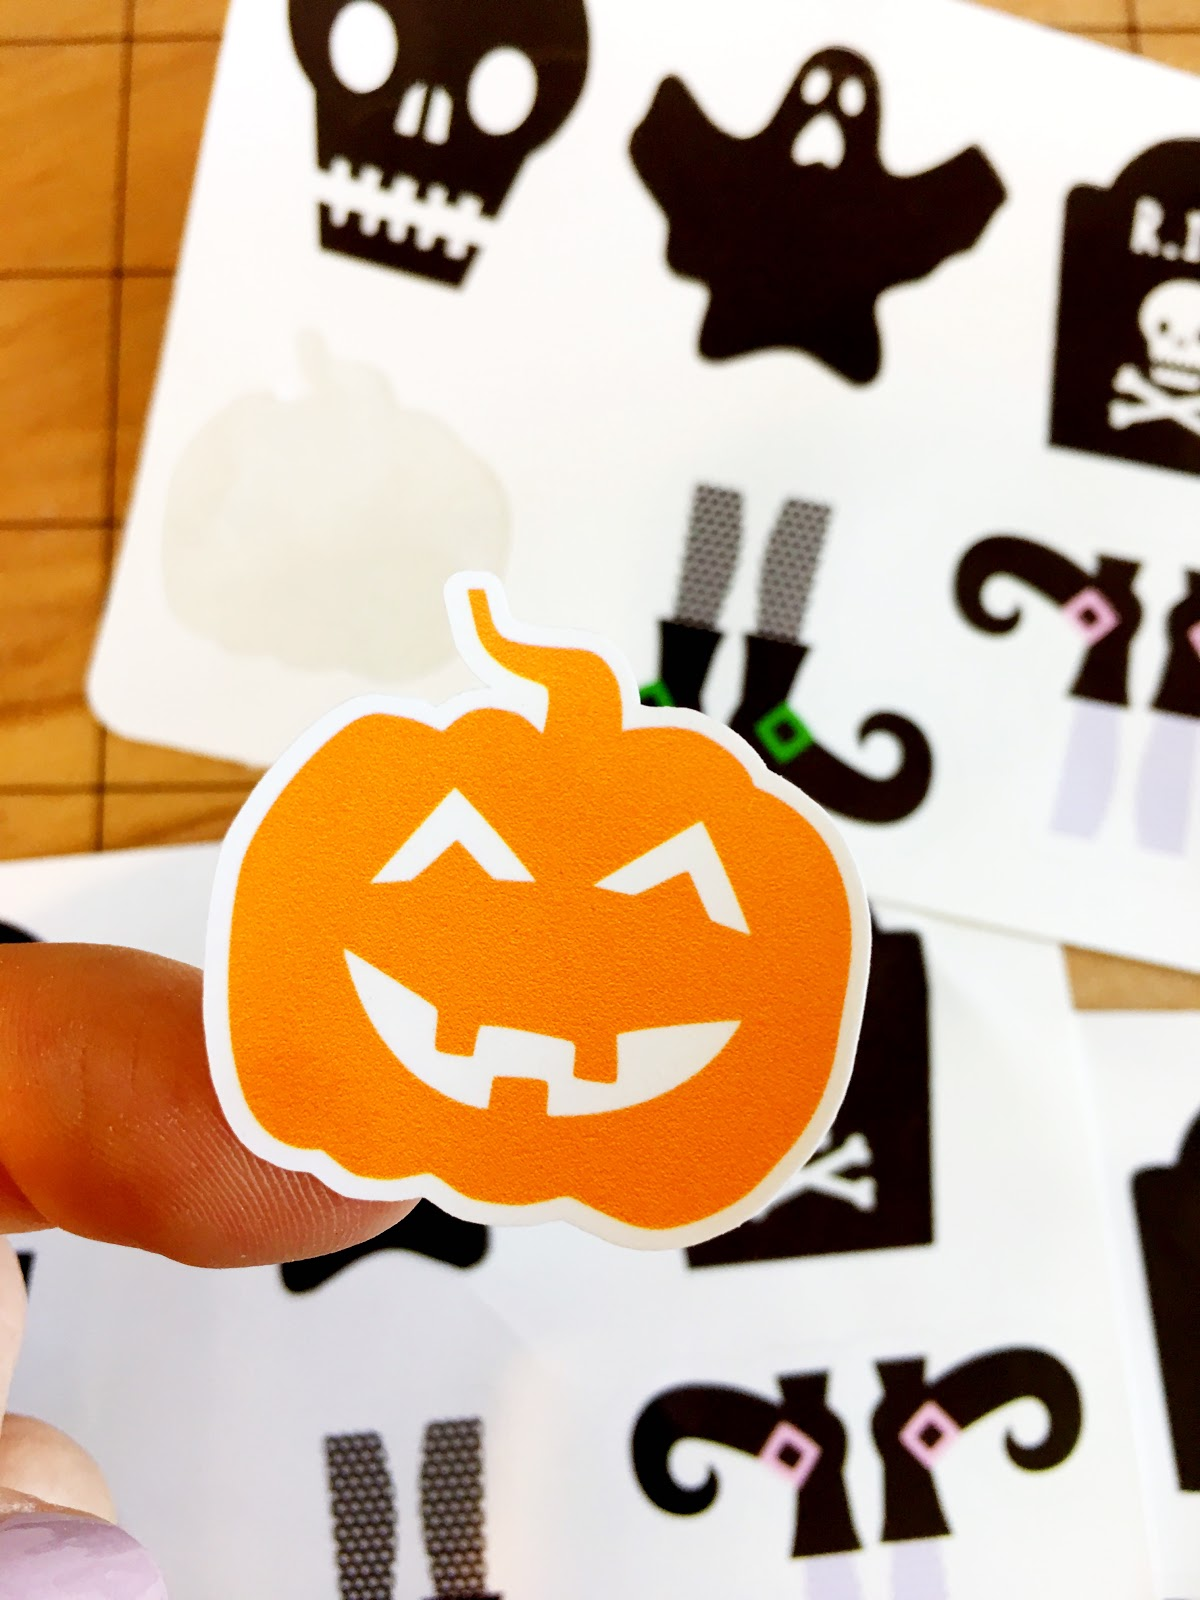 How to Make Print and Cut Sticker Sets (Silhouette Studio V4